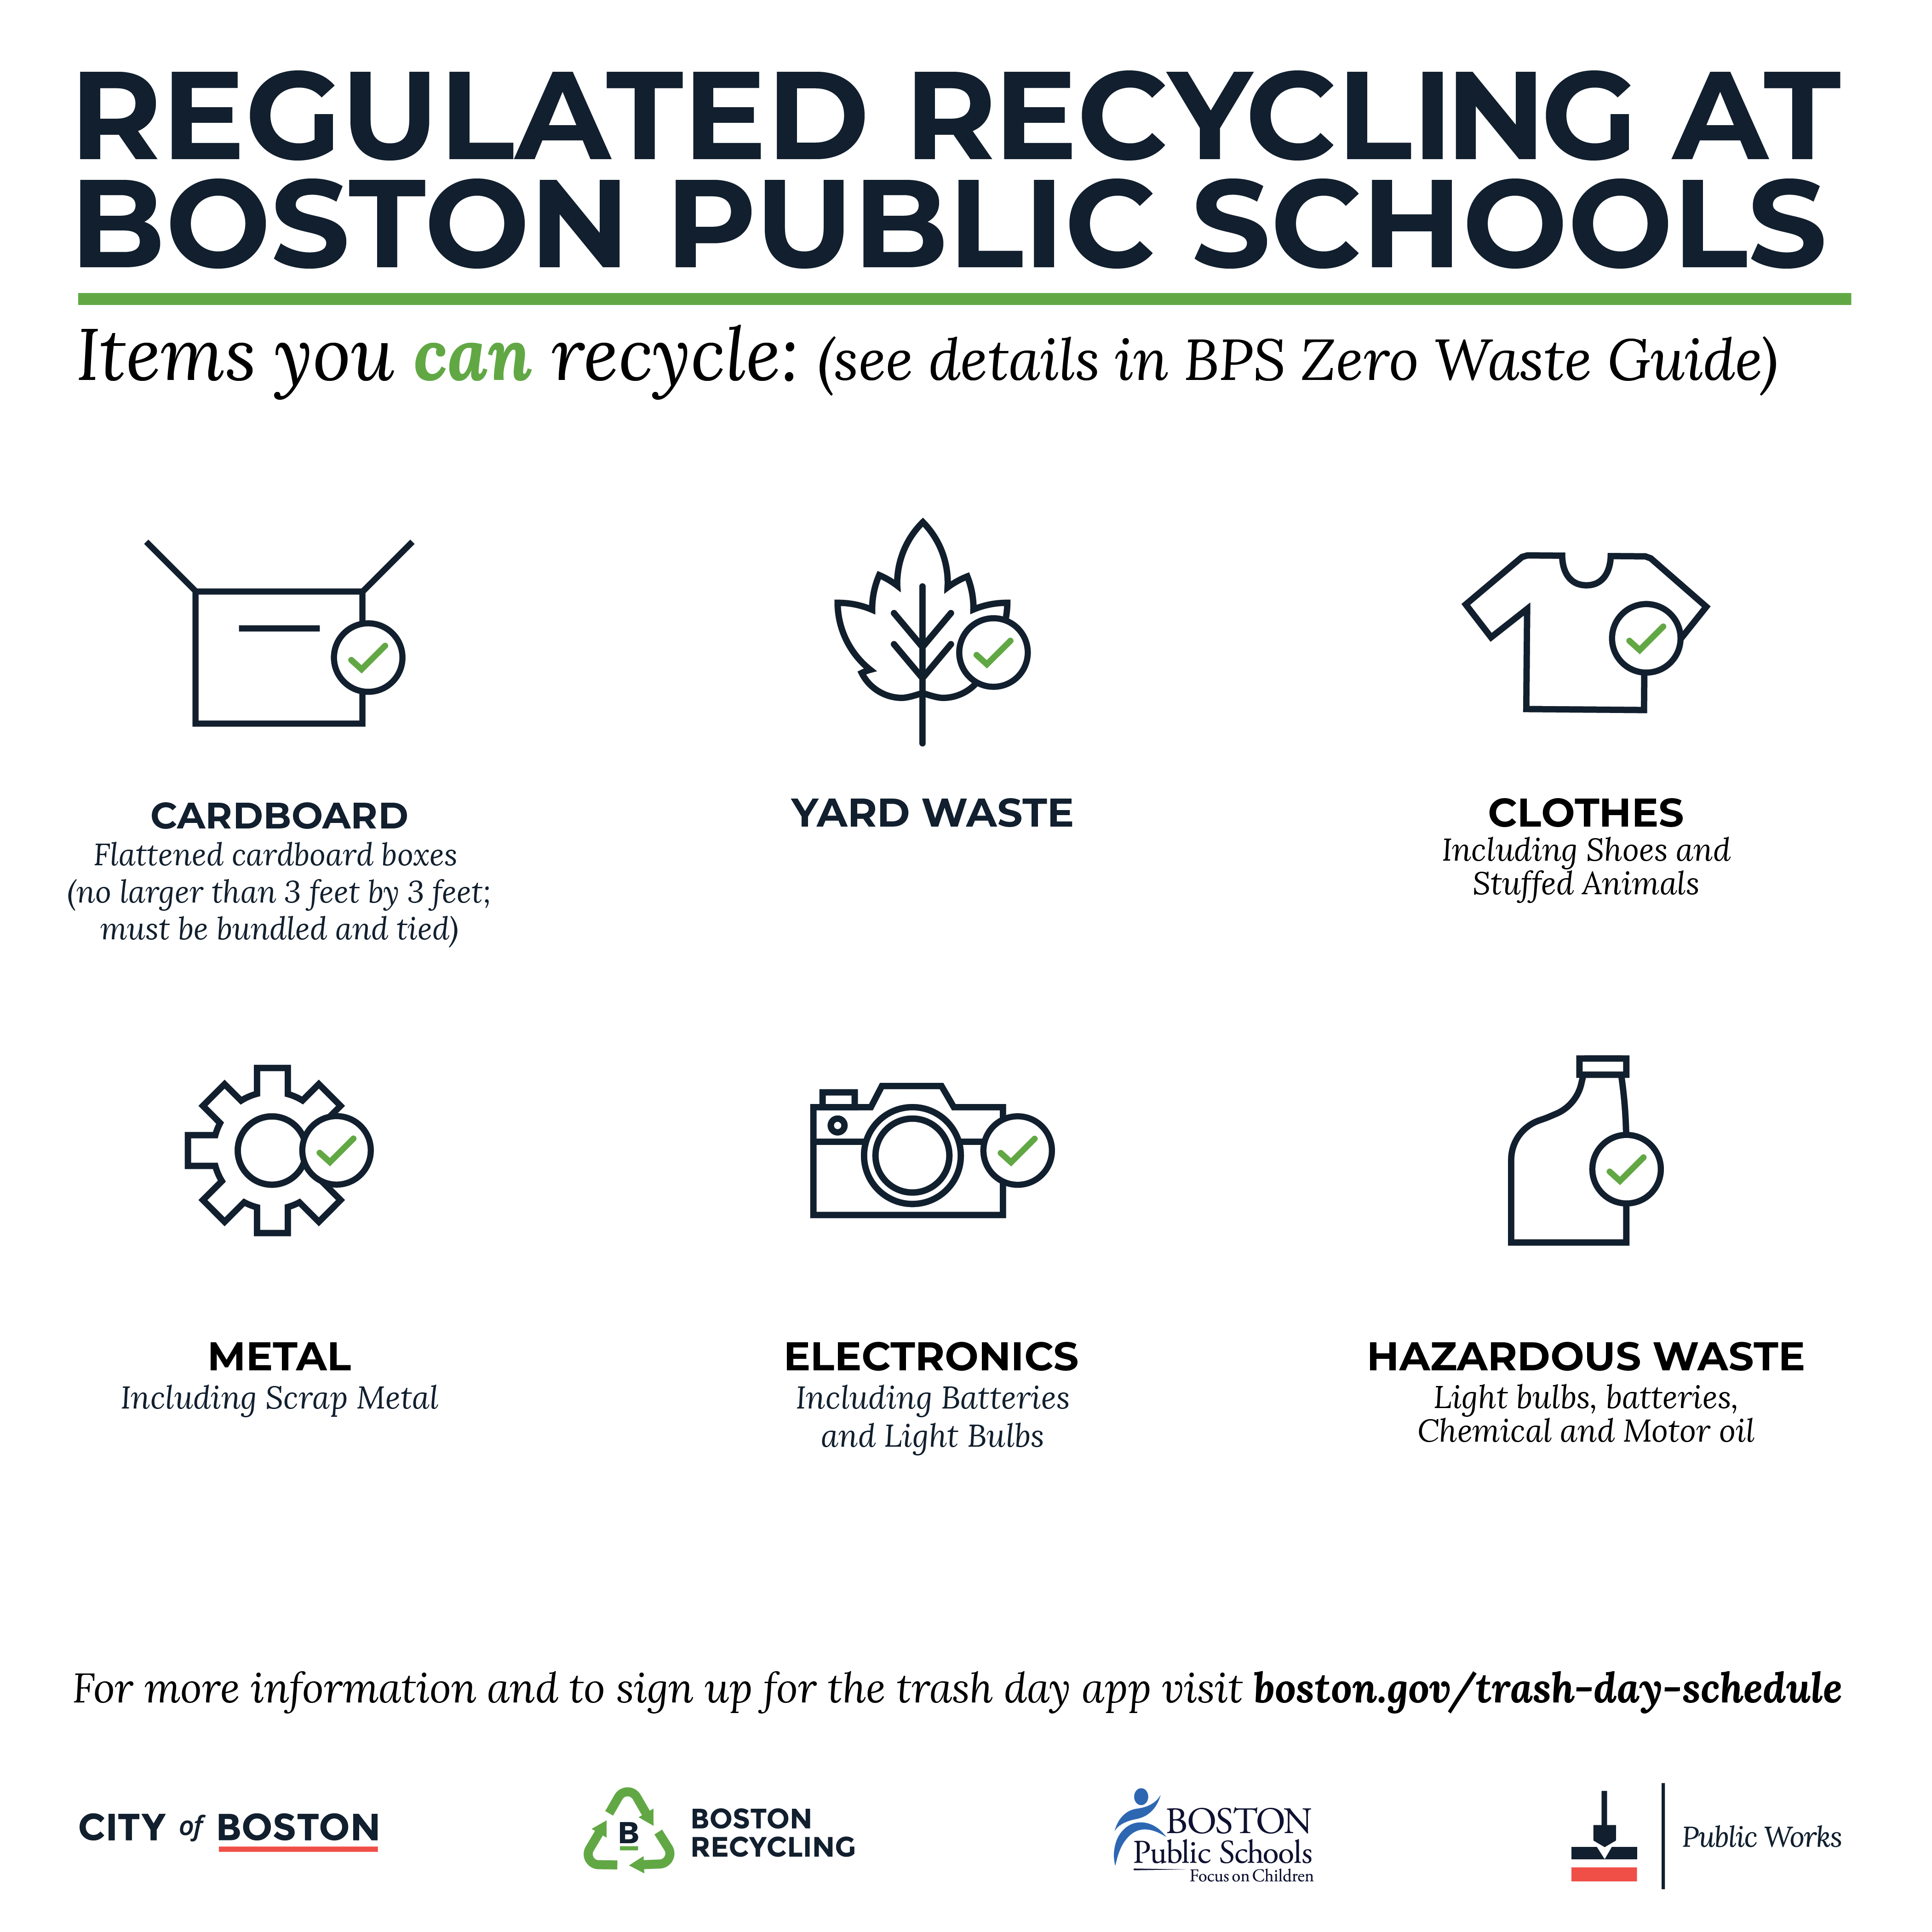 BPS Regulated Recycling